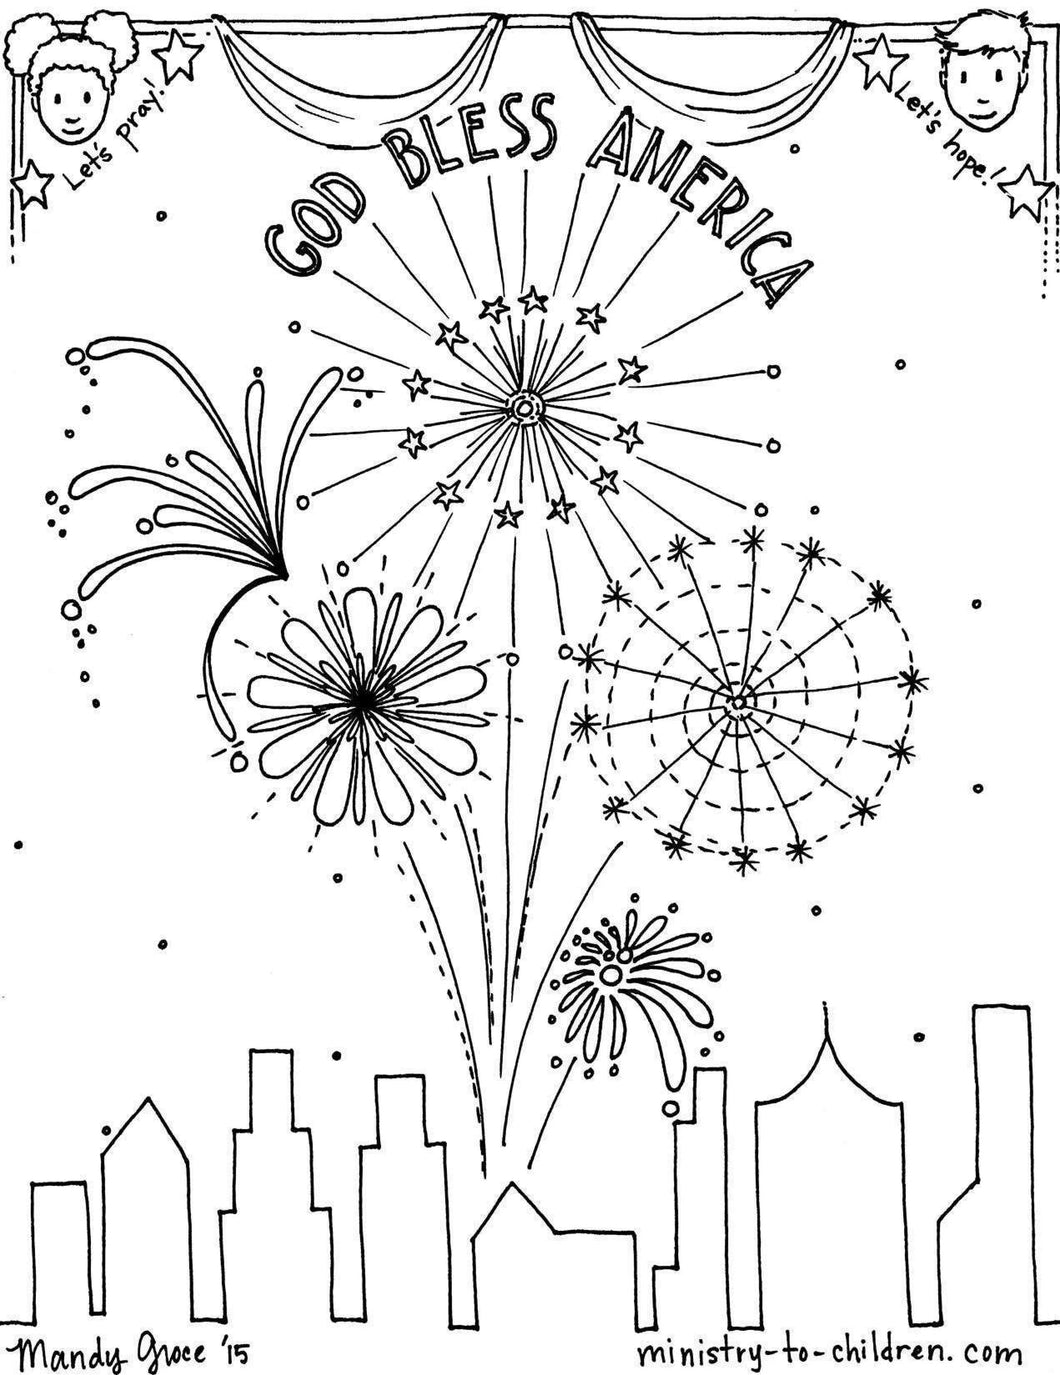 Patriotic Independence Printables (FREE) Coloring Pages for the 4th of July (6 Pages)